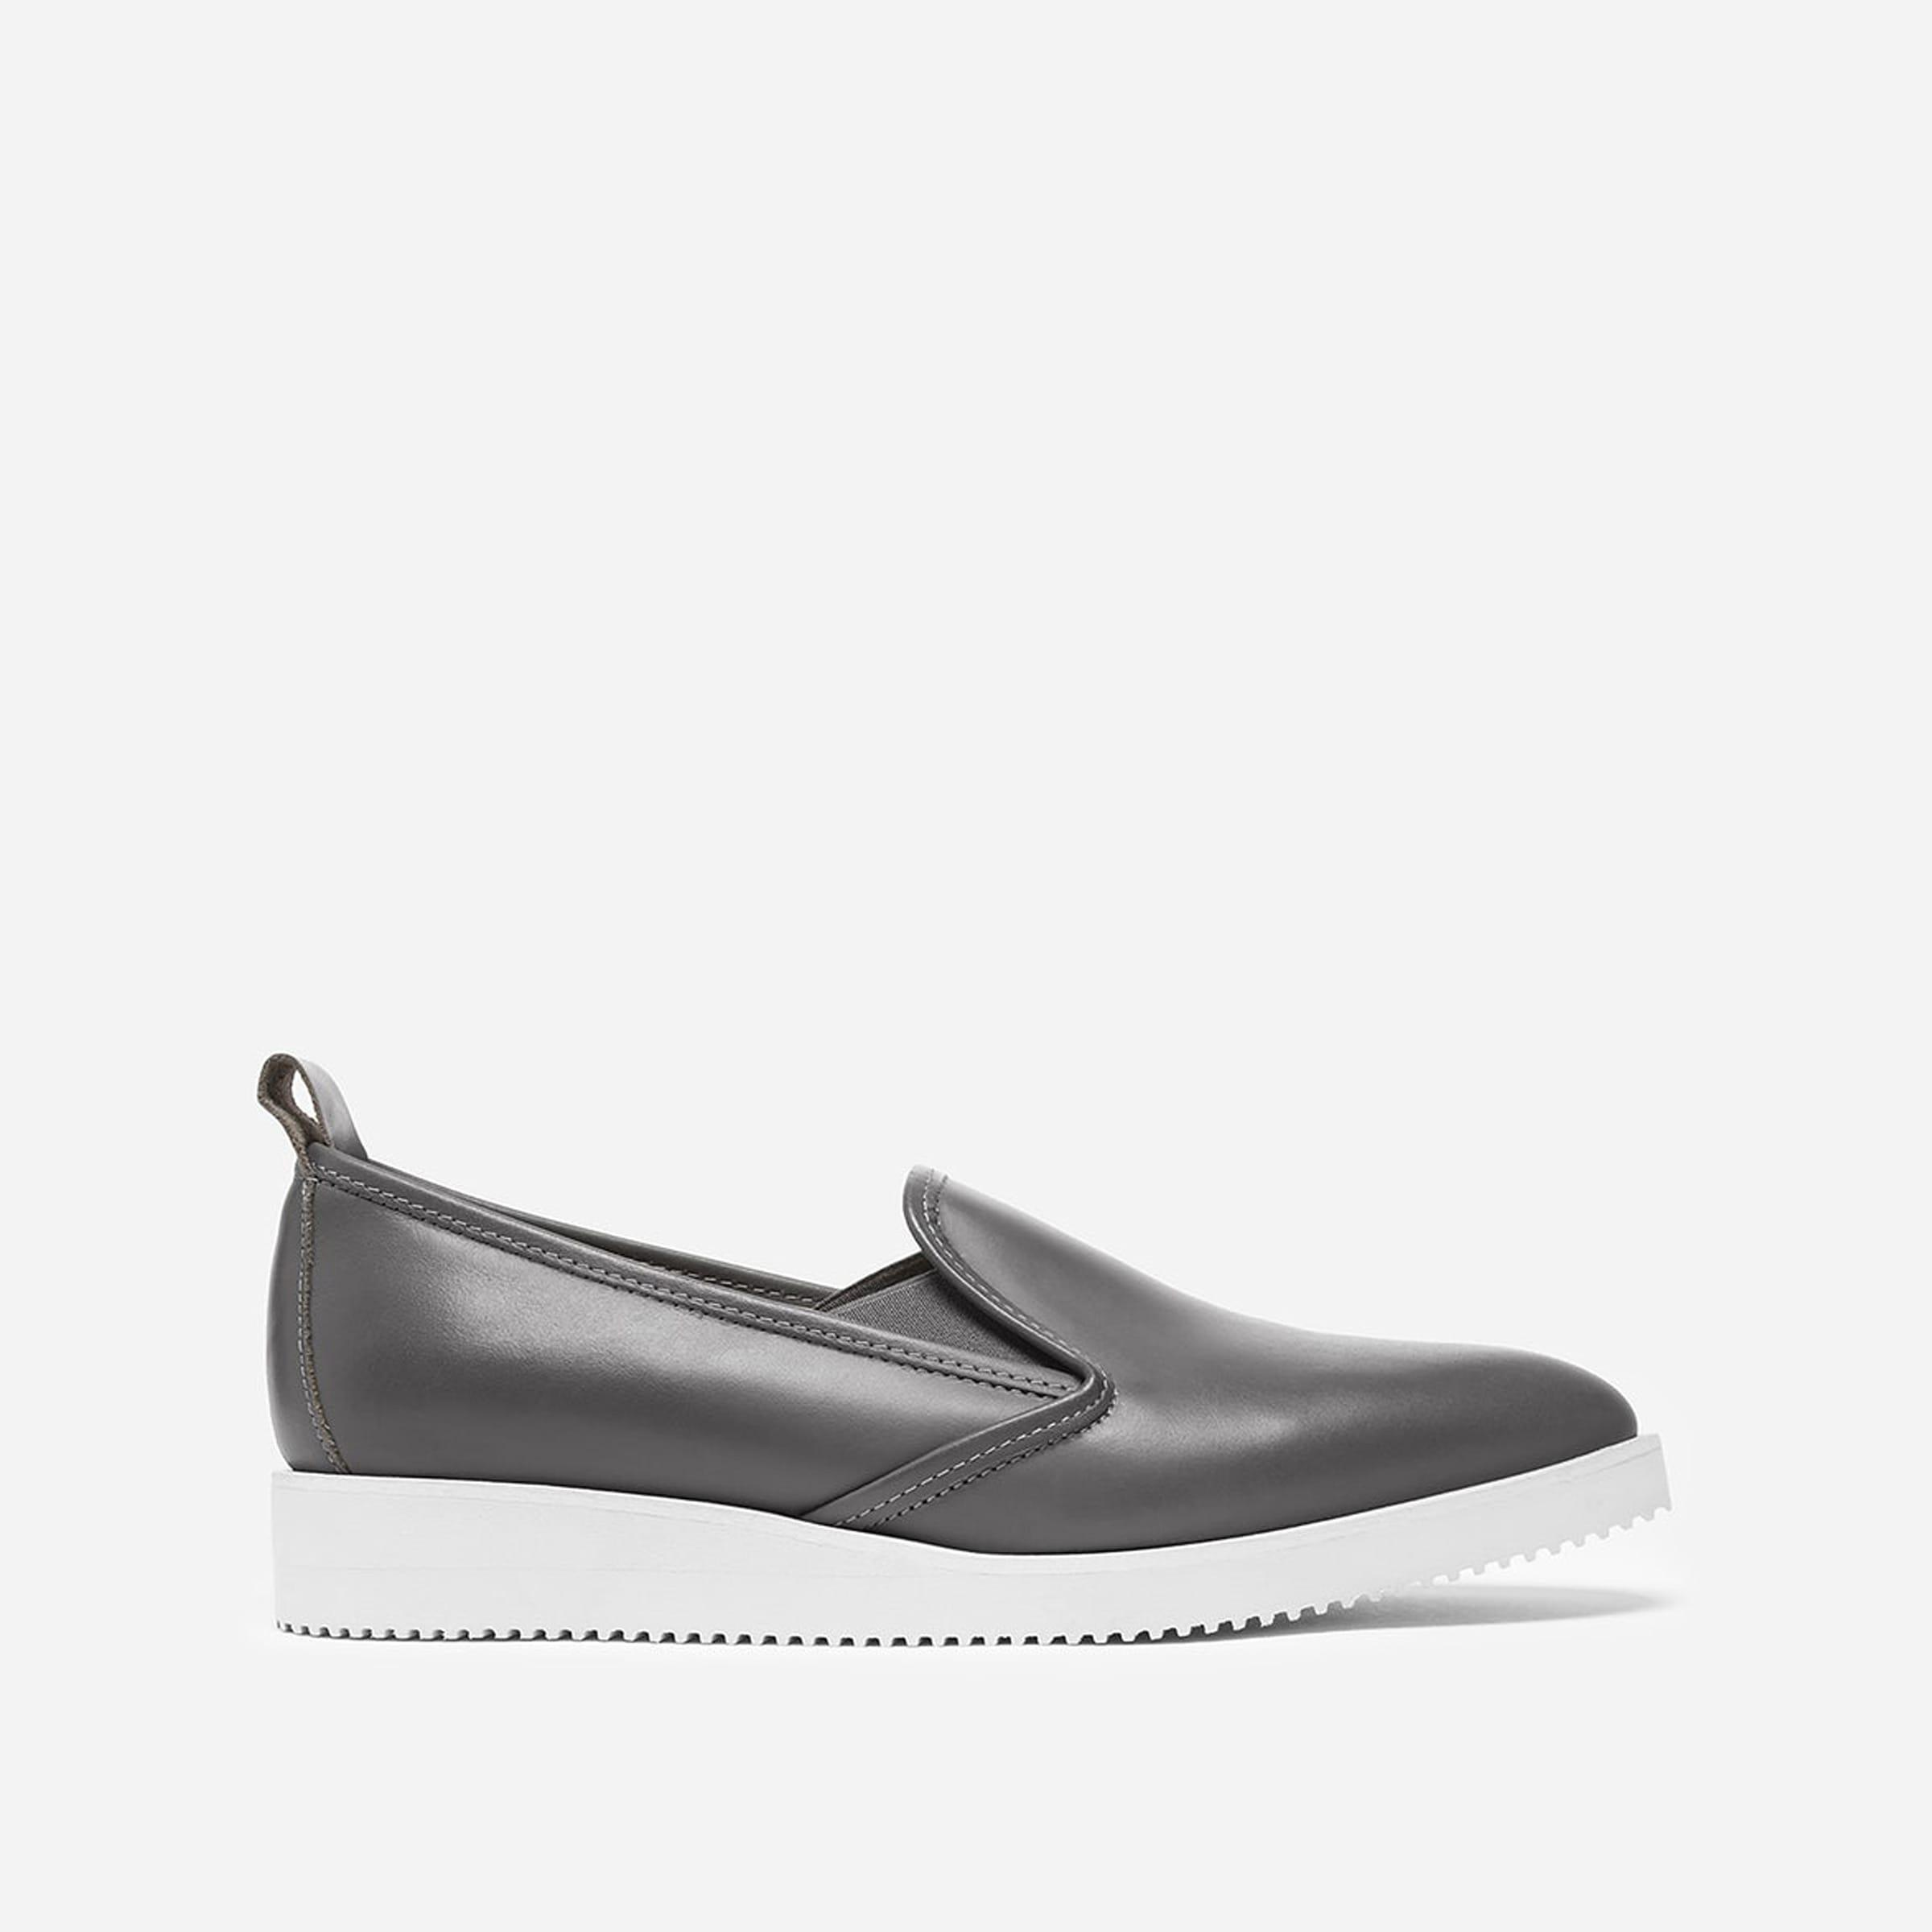 The Leather Street Shoe 0